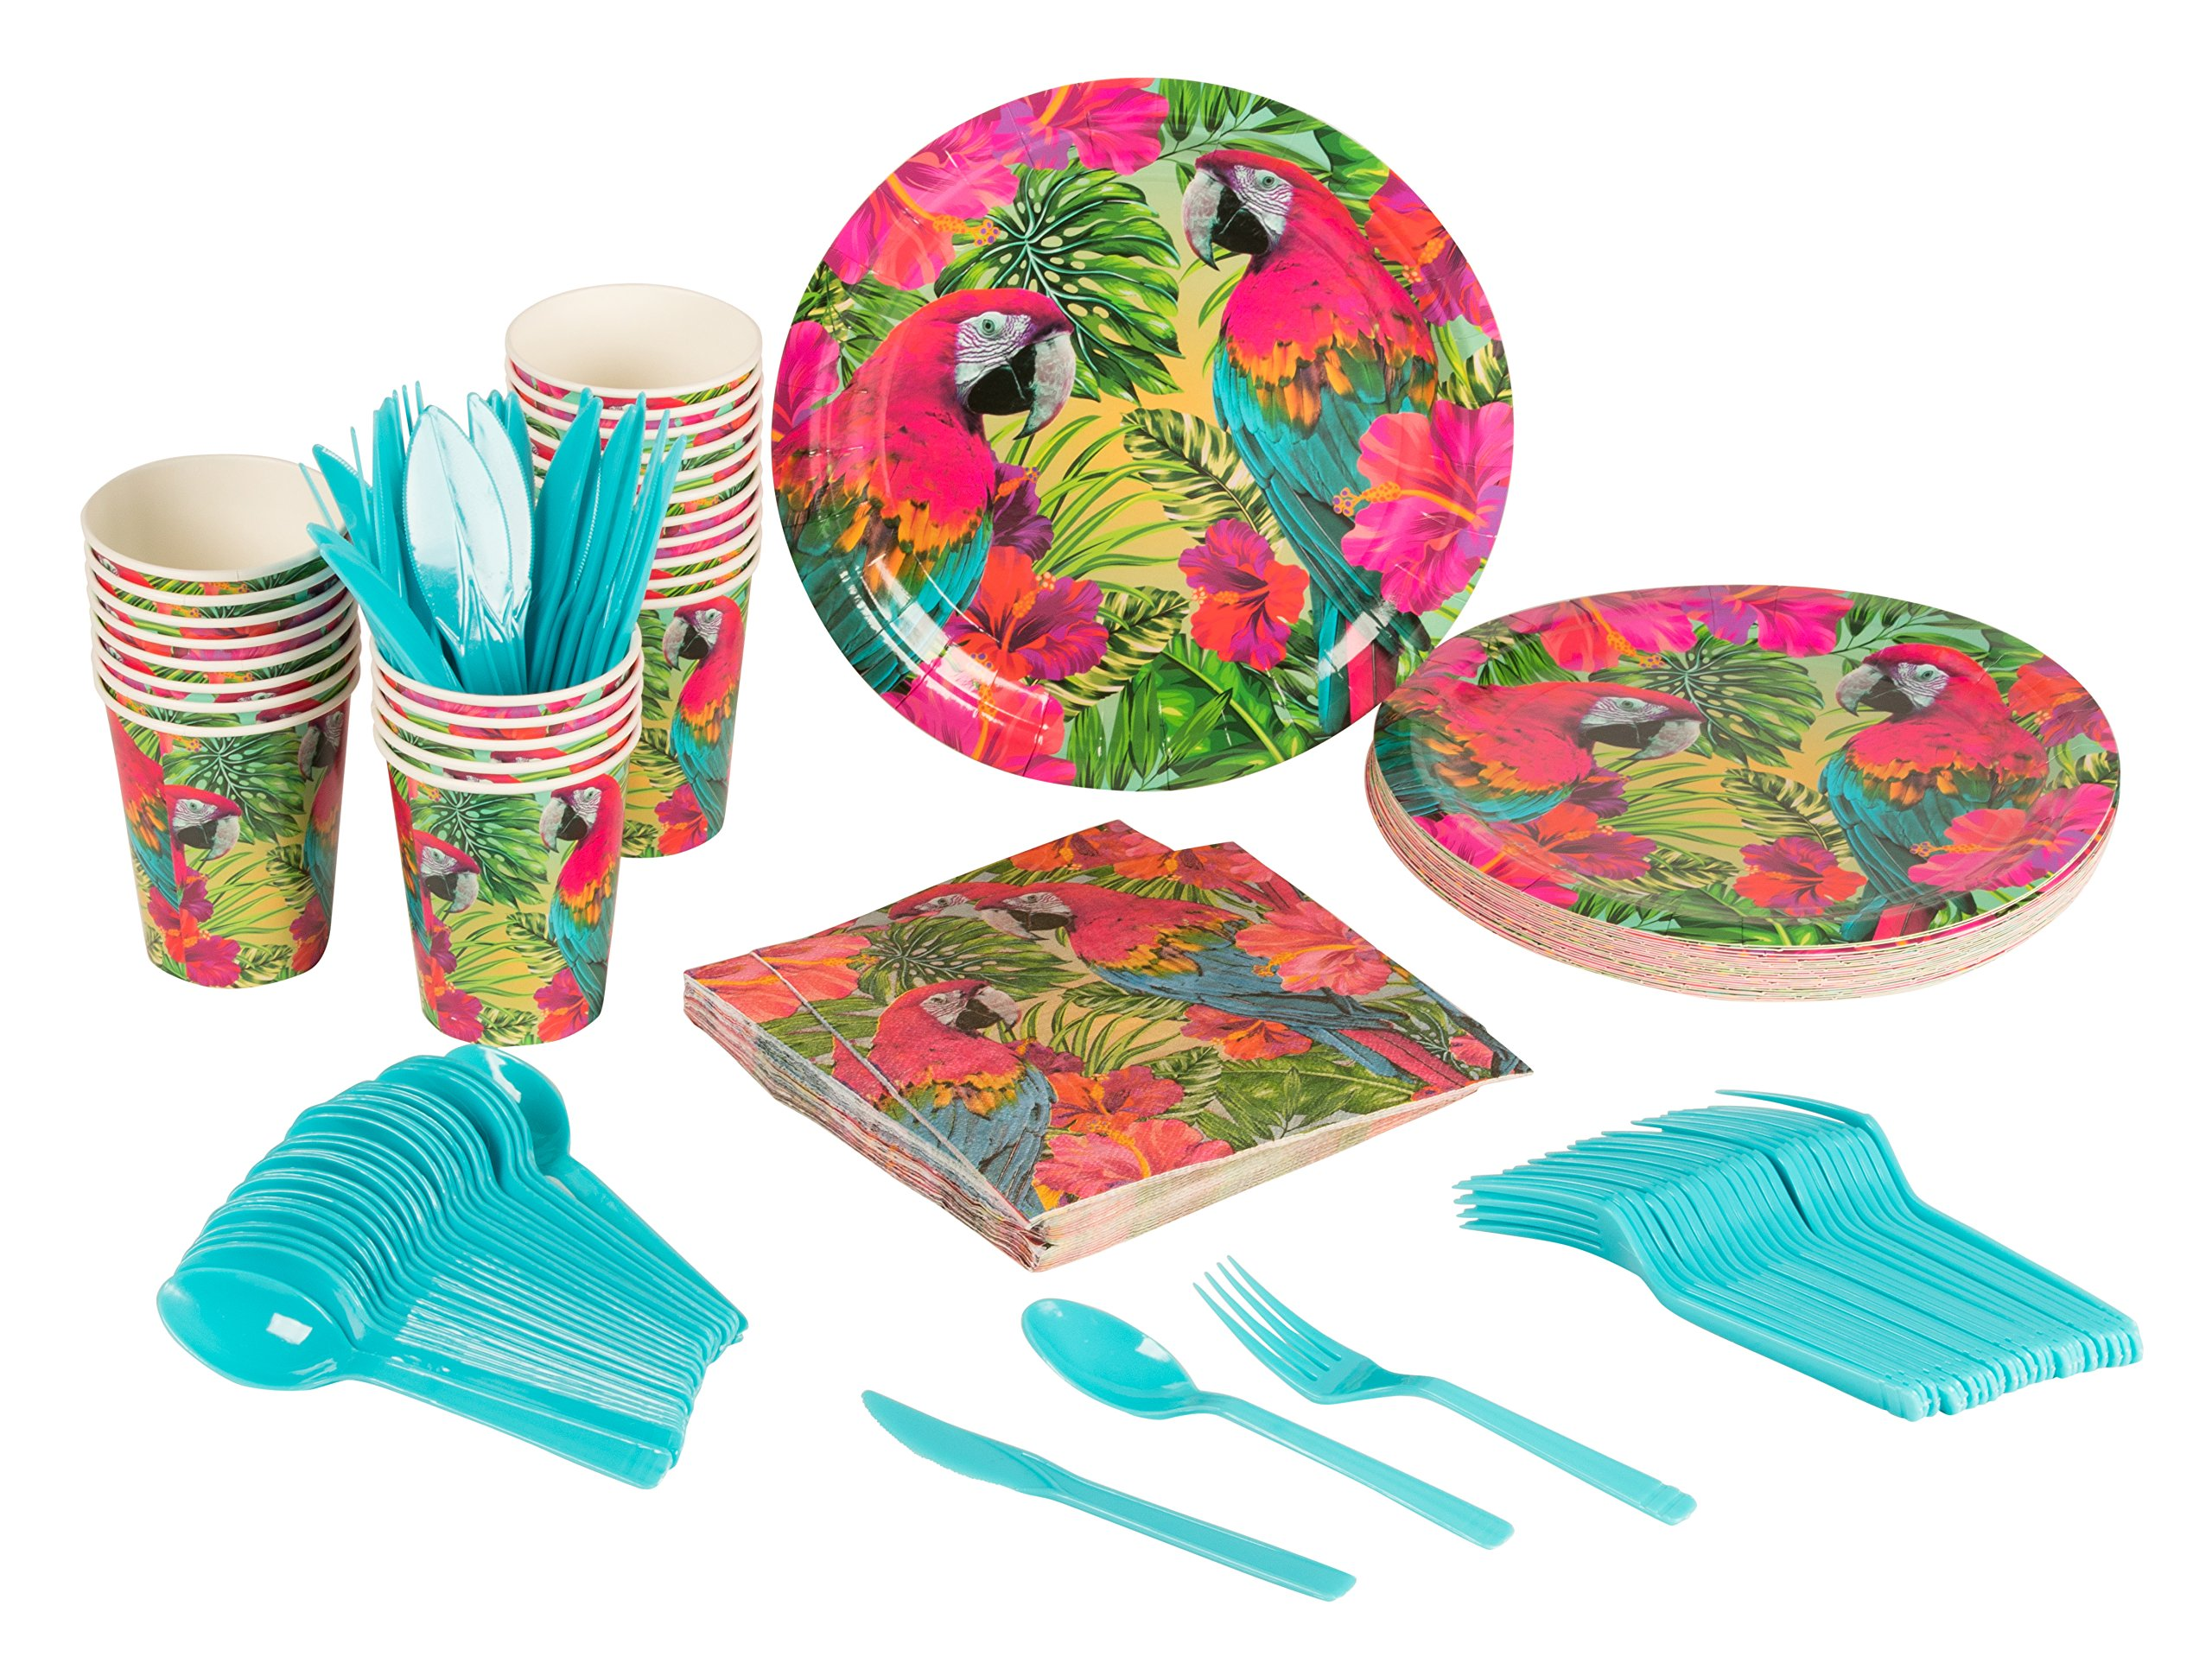 Disposable Dinnerware Set - Serves 24 - Tropical Party Supplies for Birthdays, Parrot Designs - Includes Plastic Knives, Spoons, Forks, Paper Plates, Napkins, Cups